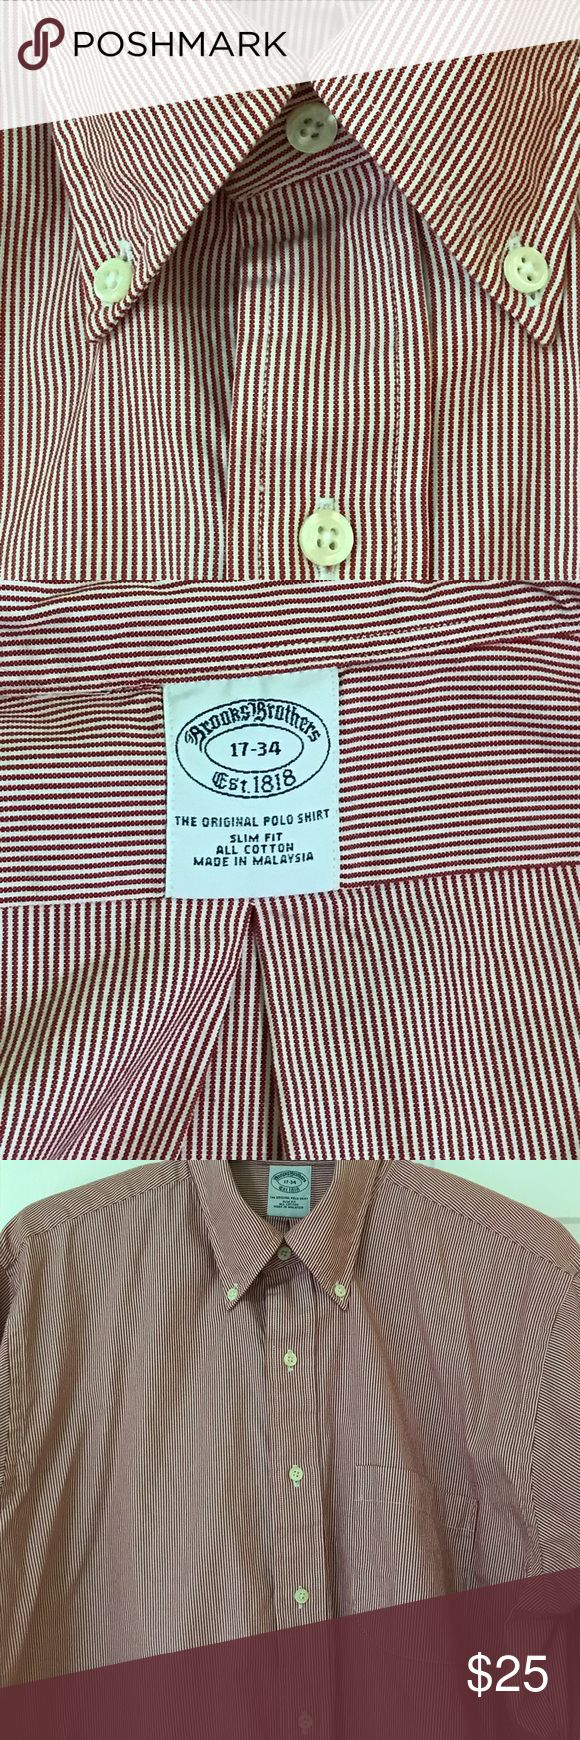 ♥️🎊 Brooks Brothers slim fit dress shirt All cotton slim fit dress shirt. Only worn a few times. In excellent condition. Brooks Brothers Shirts Dress Shirts